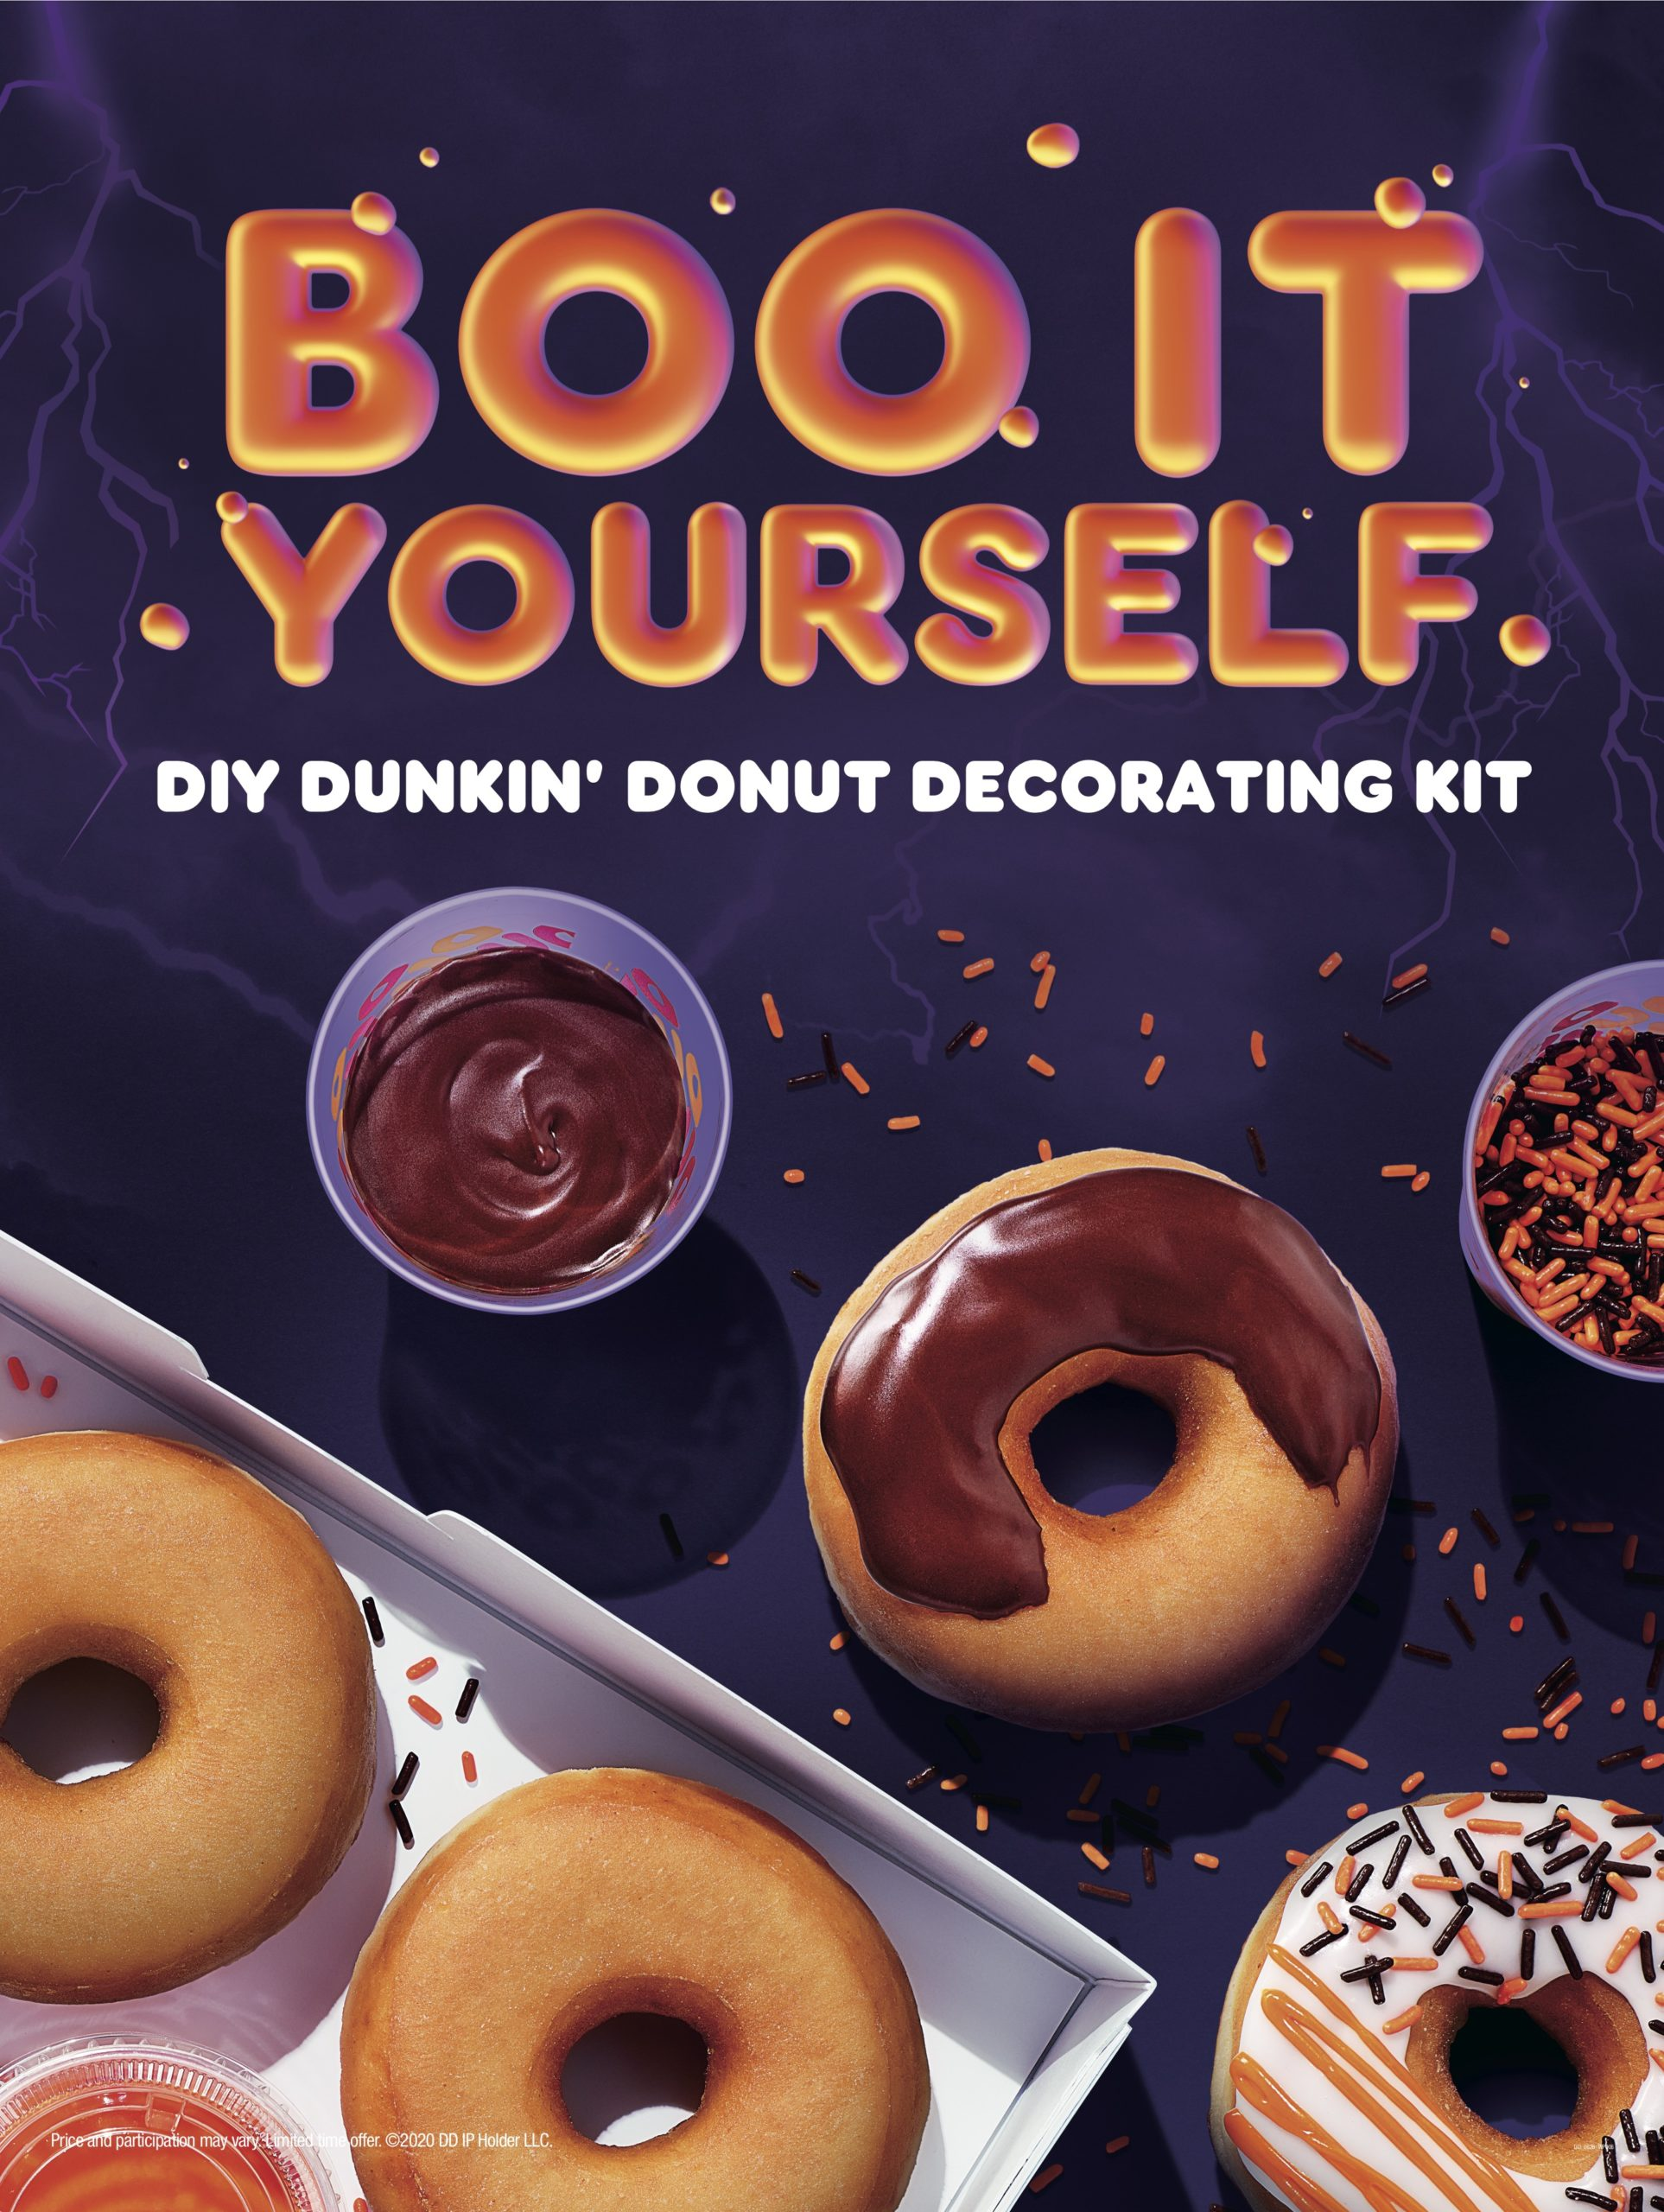 Dunkin's 2020 Halloween treats include its first spicy donut 16